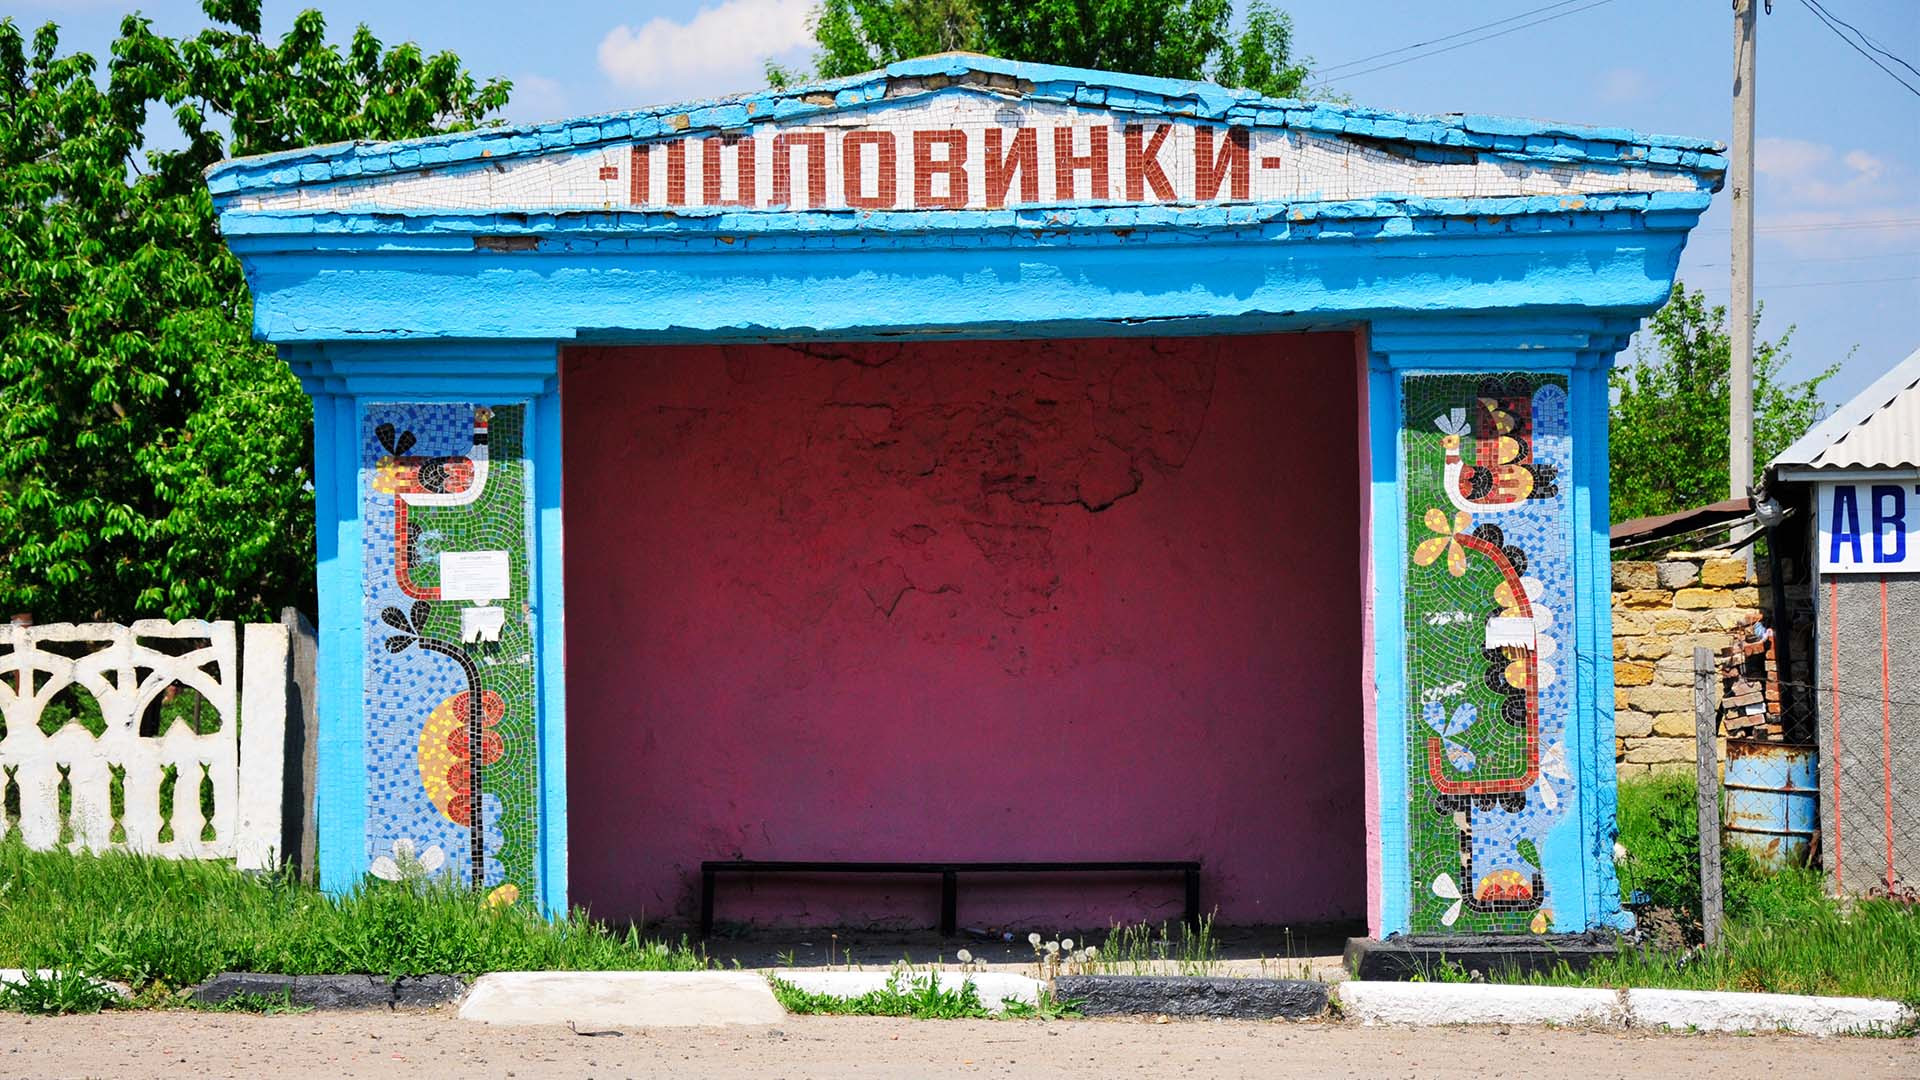 Greco-Roman styled bus stop in Ukraine